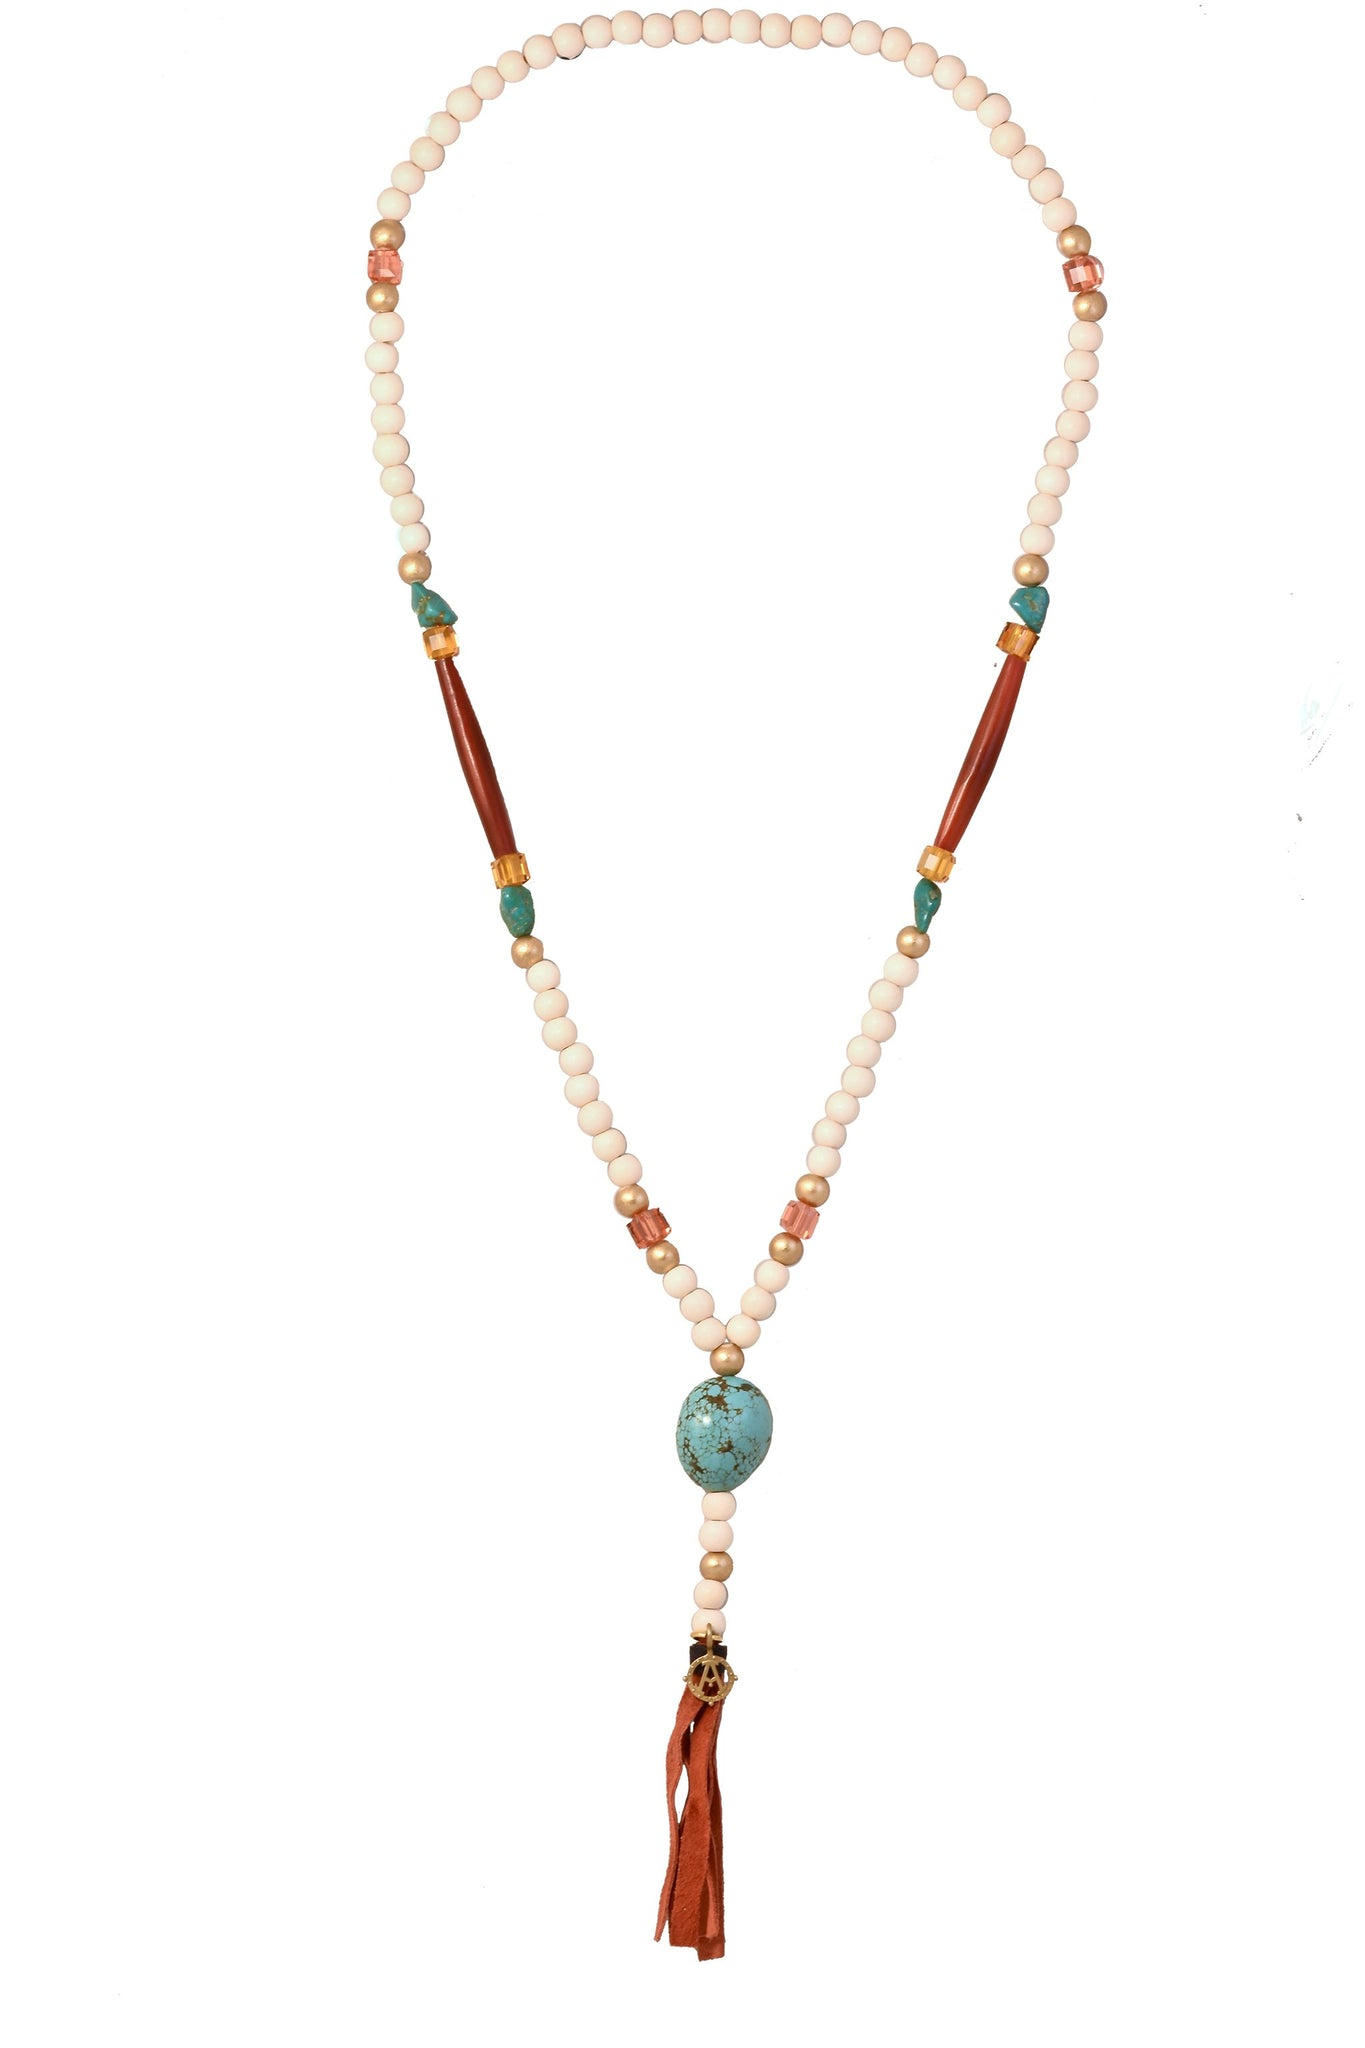 CATORI Stackable Necklace in cream with turquoise accents - AmatoStyle